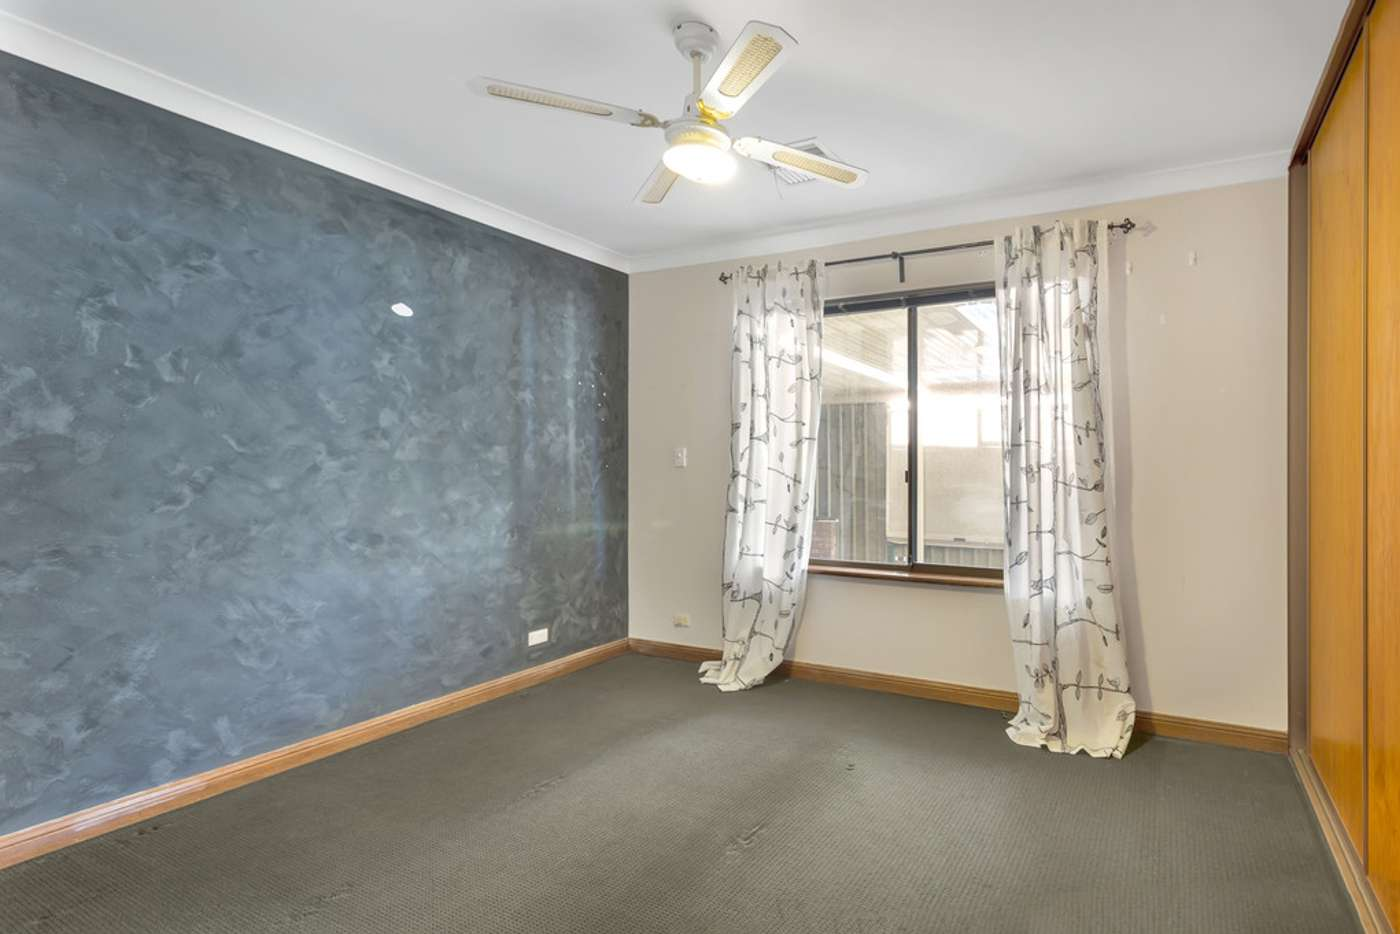 Sixth view of Homely house listing, 1/13 Riesling Street, Morphett Vale SA 5162